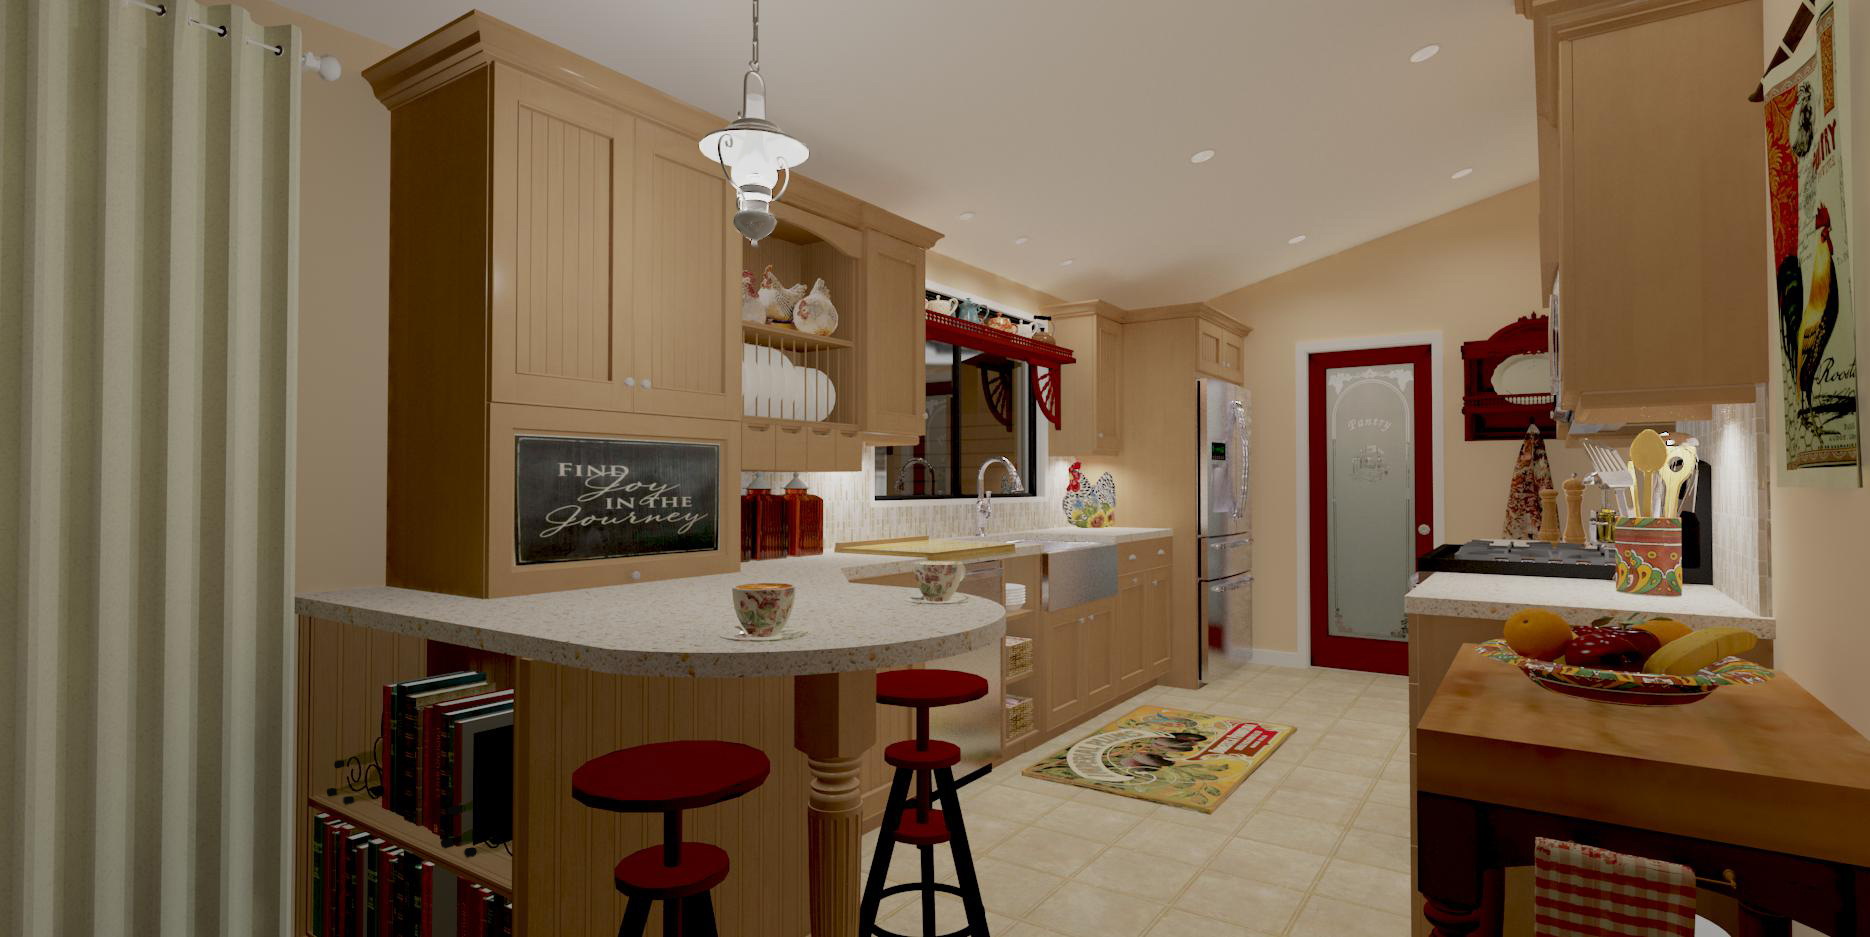 Kitchen Design Ideas For Mobile Homes Photo 13